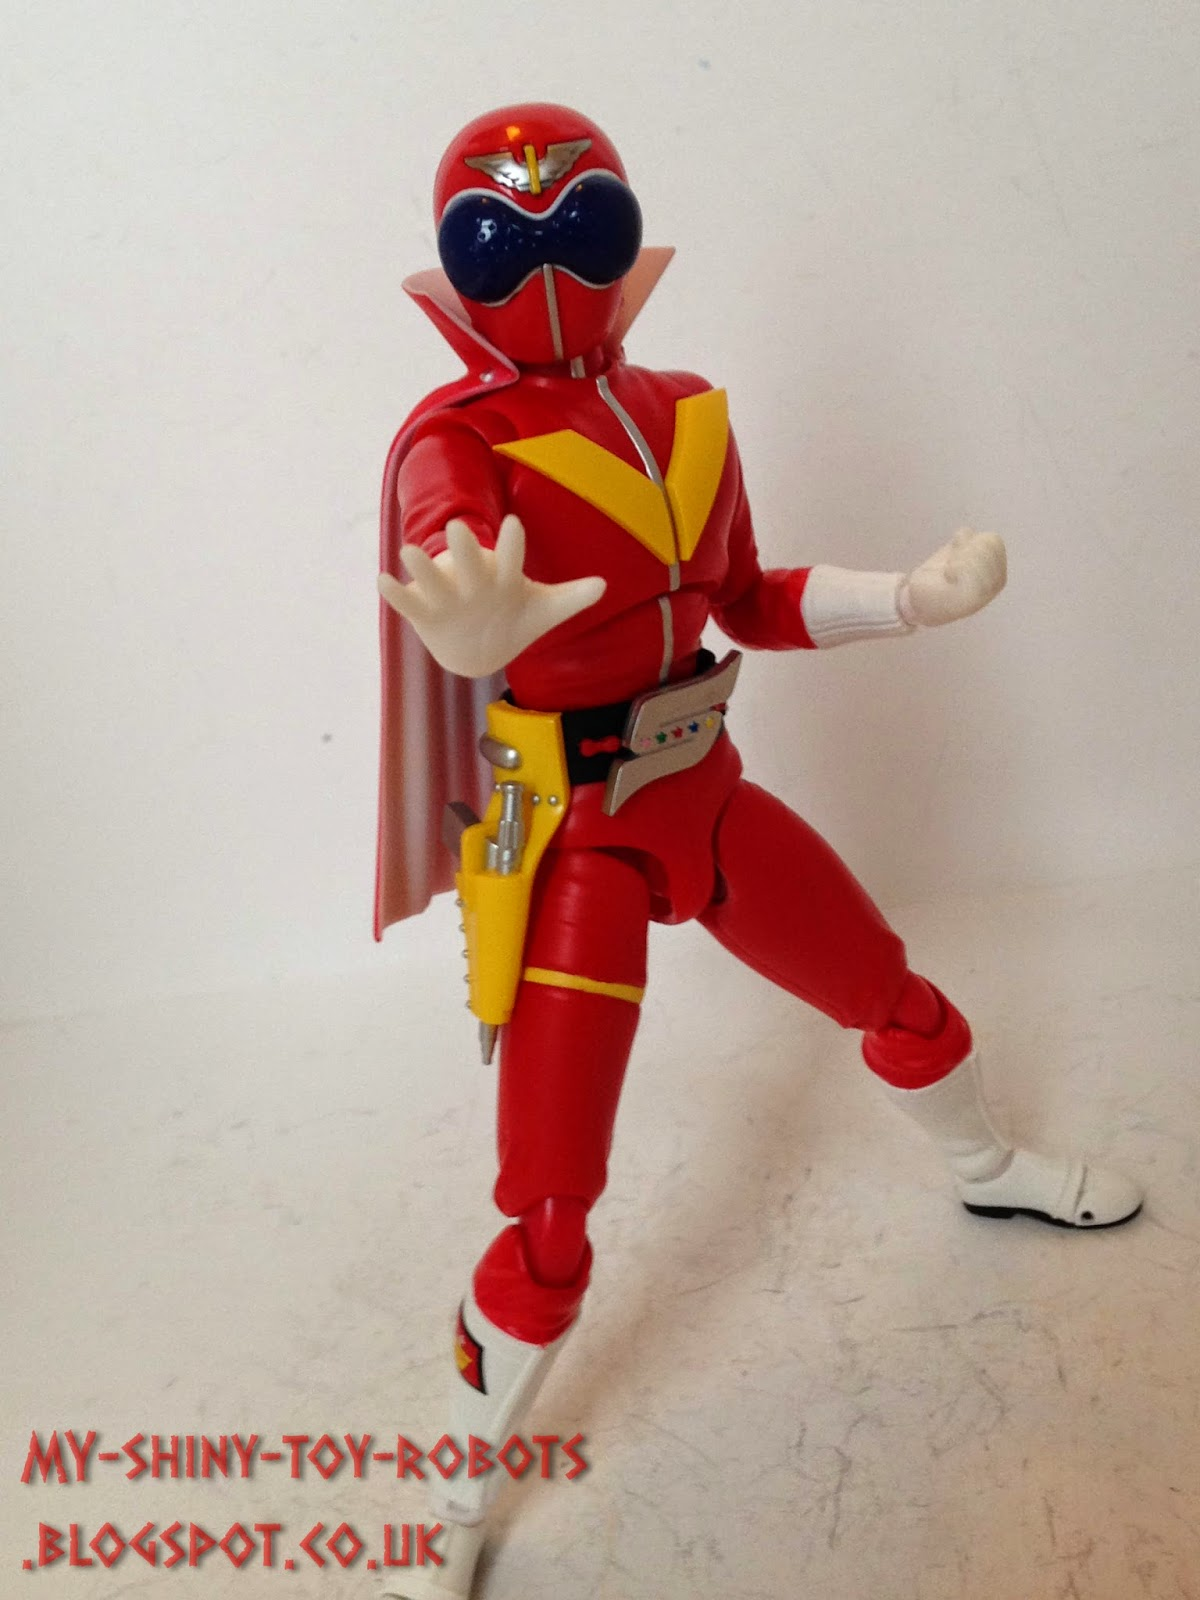 Akaranger assumes the pose